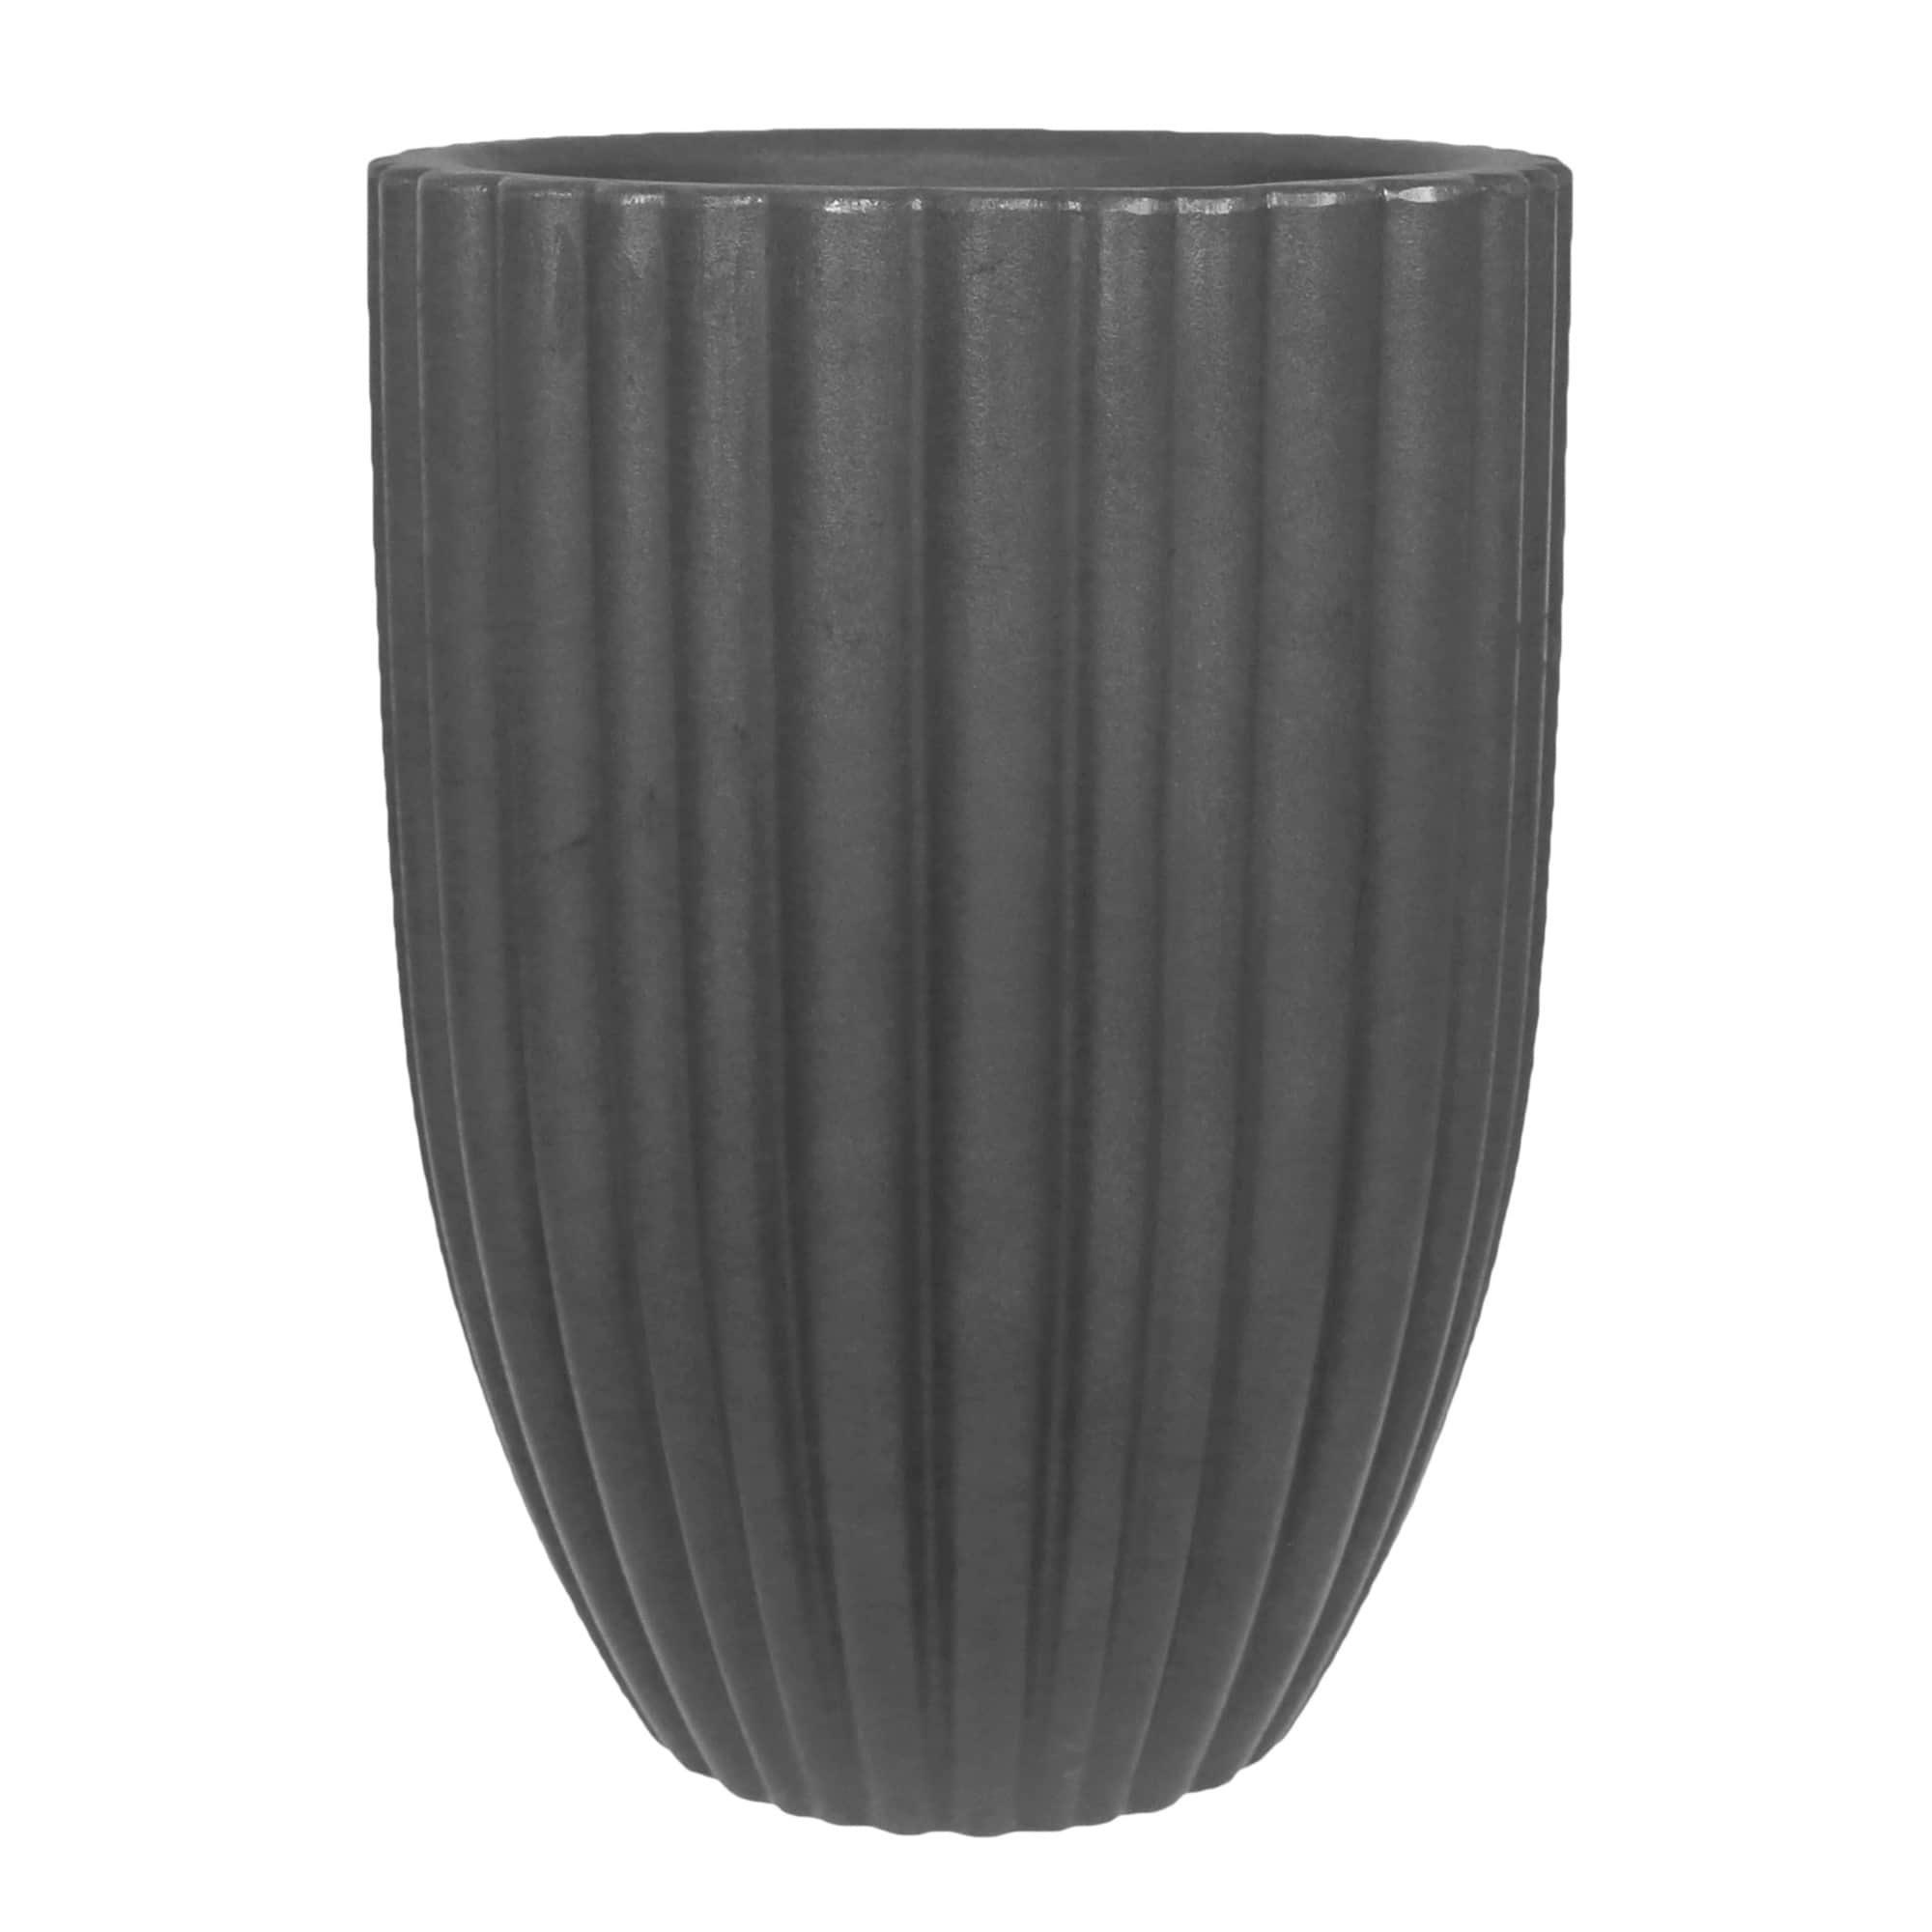 Vaso Cacau 42 x 54 cm Antique Preto